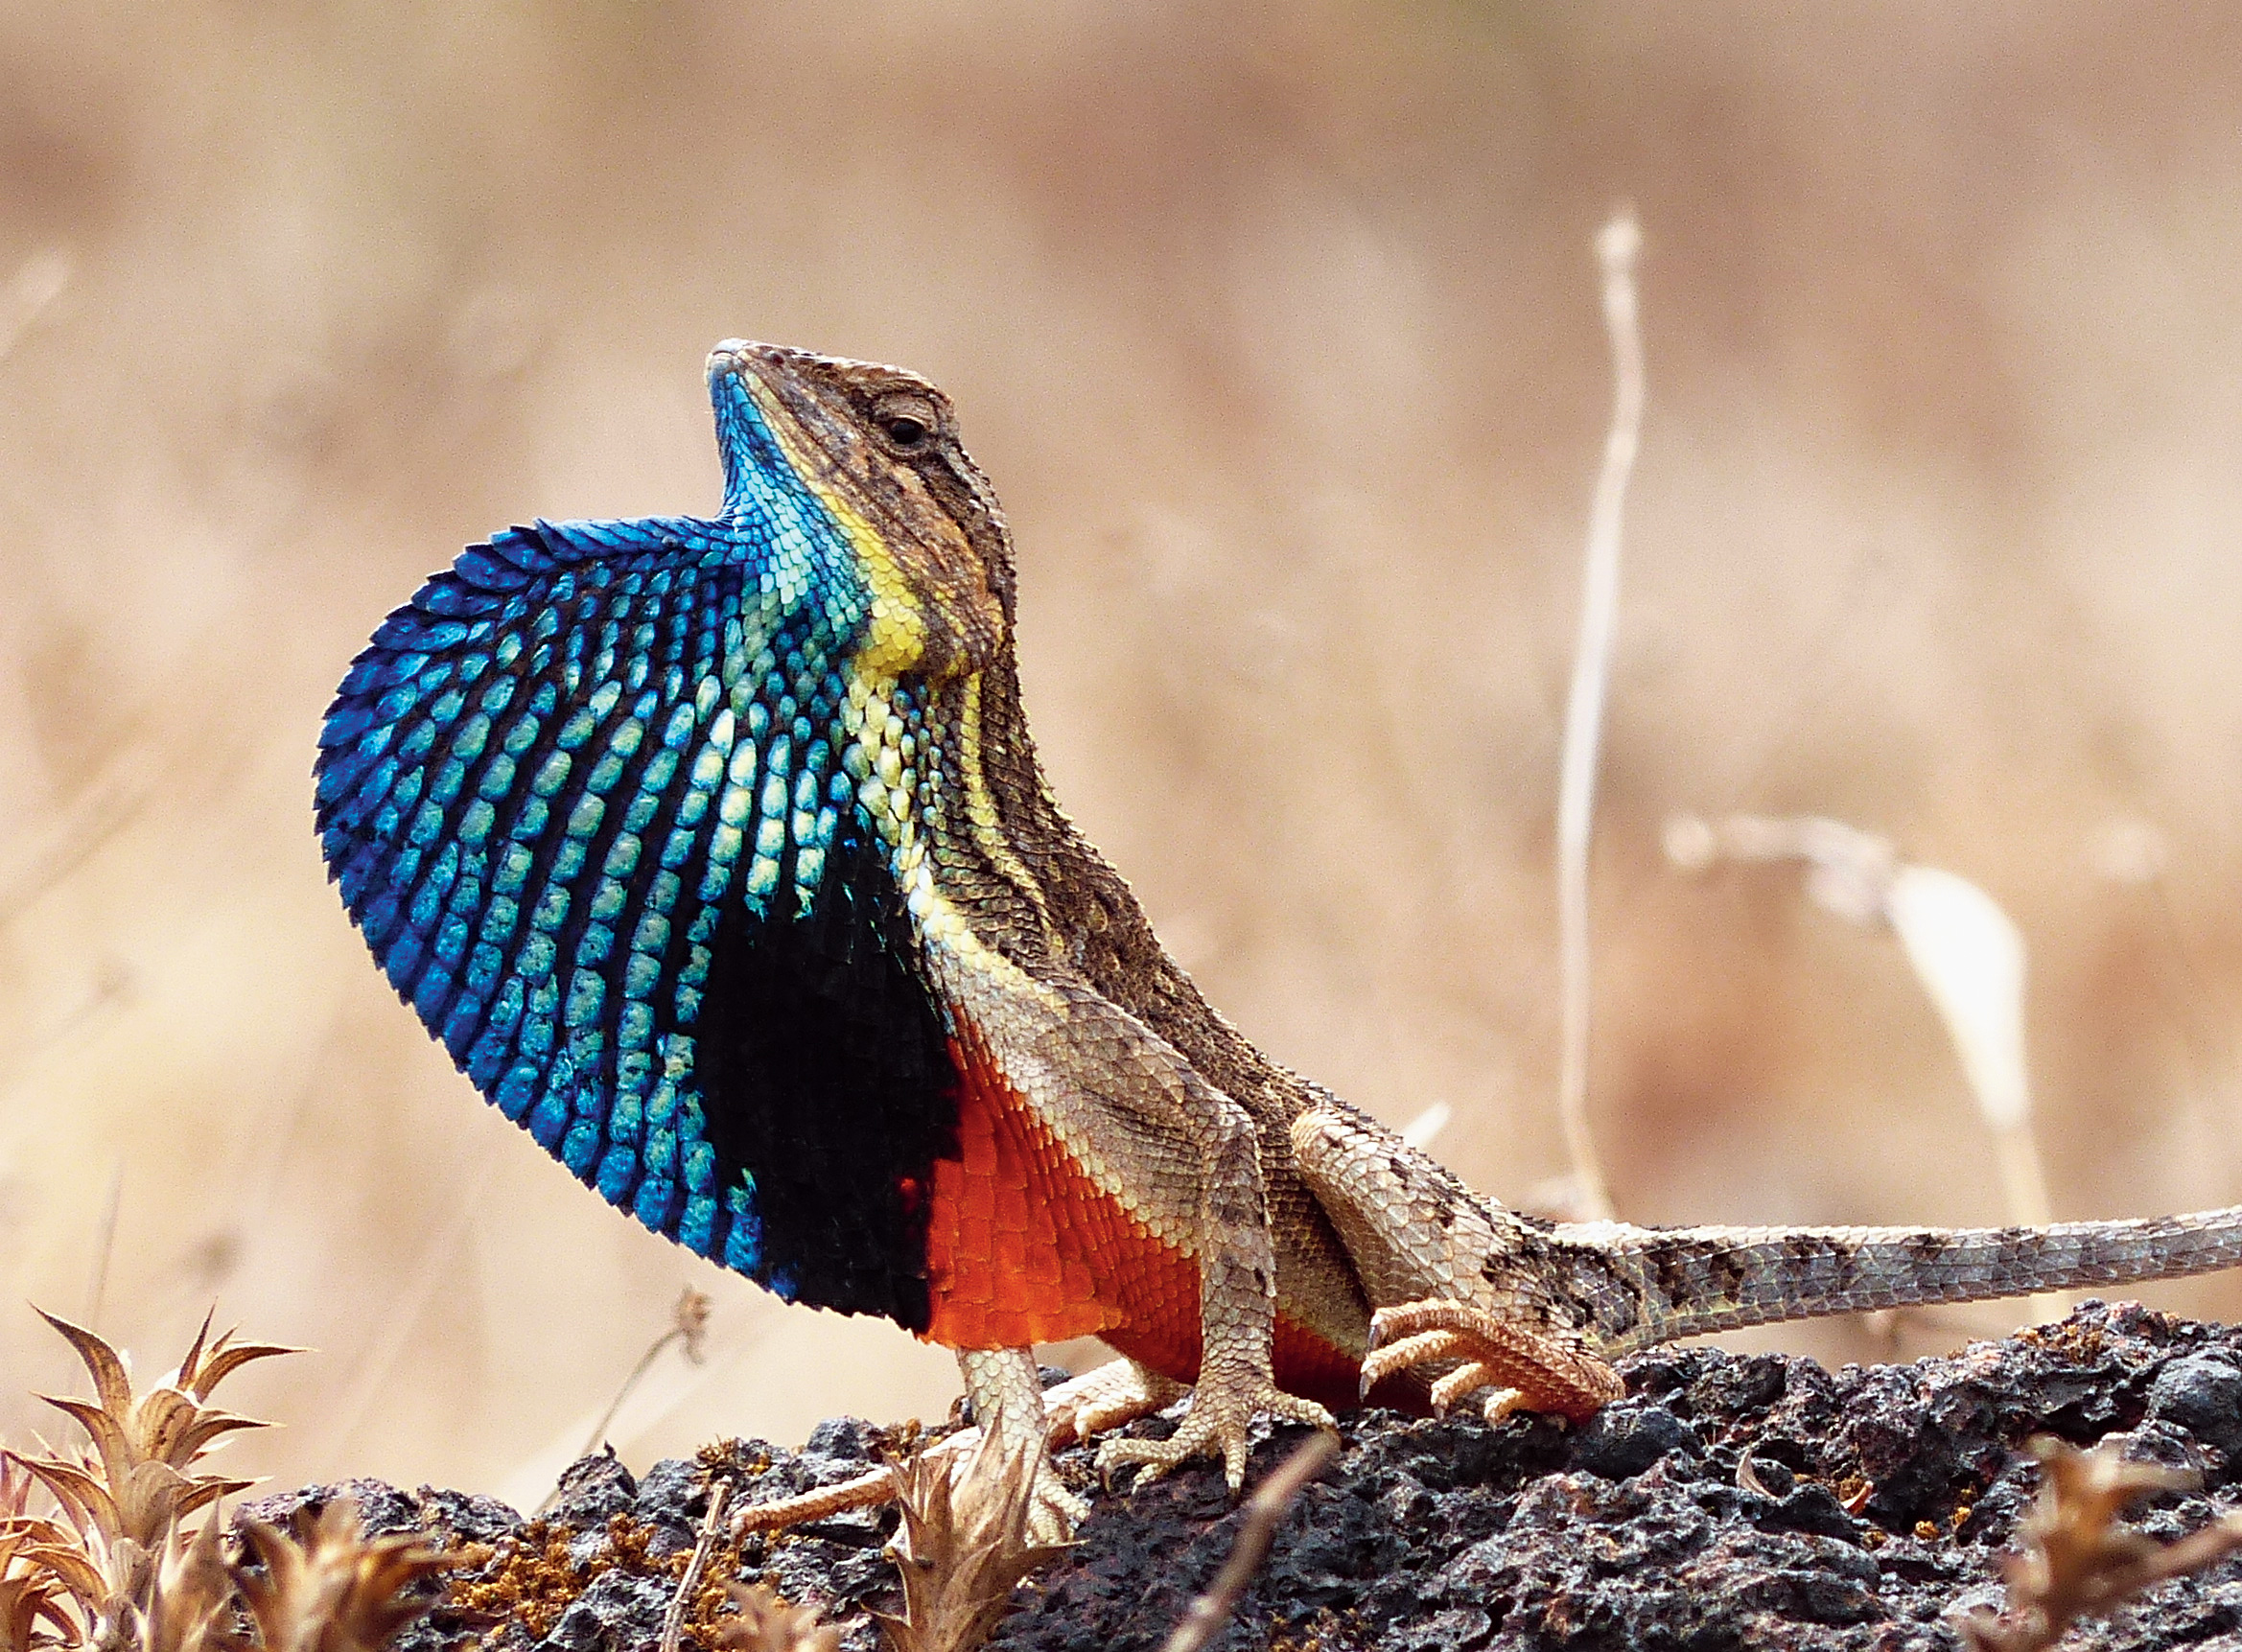 Wind farms: where kites stay away, lizards play